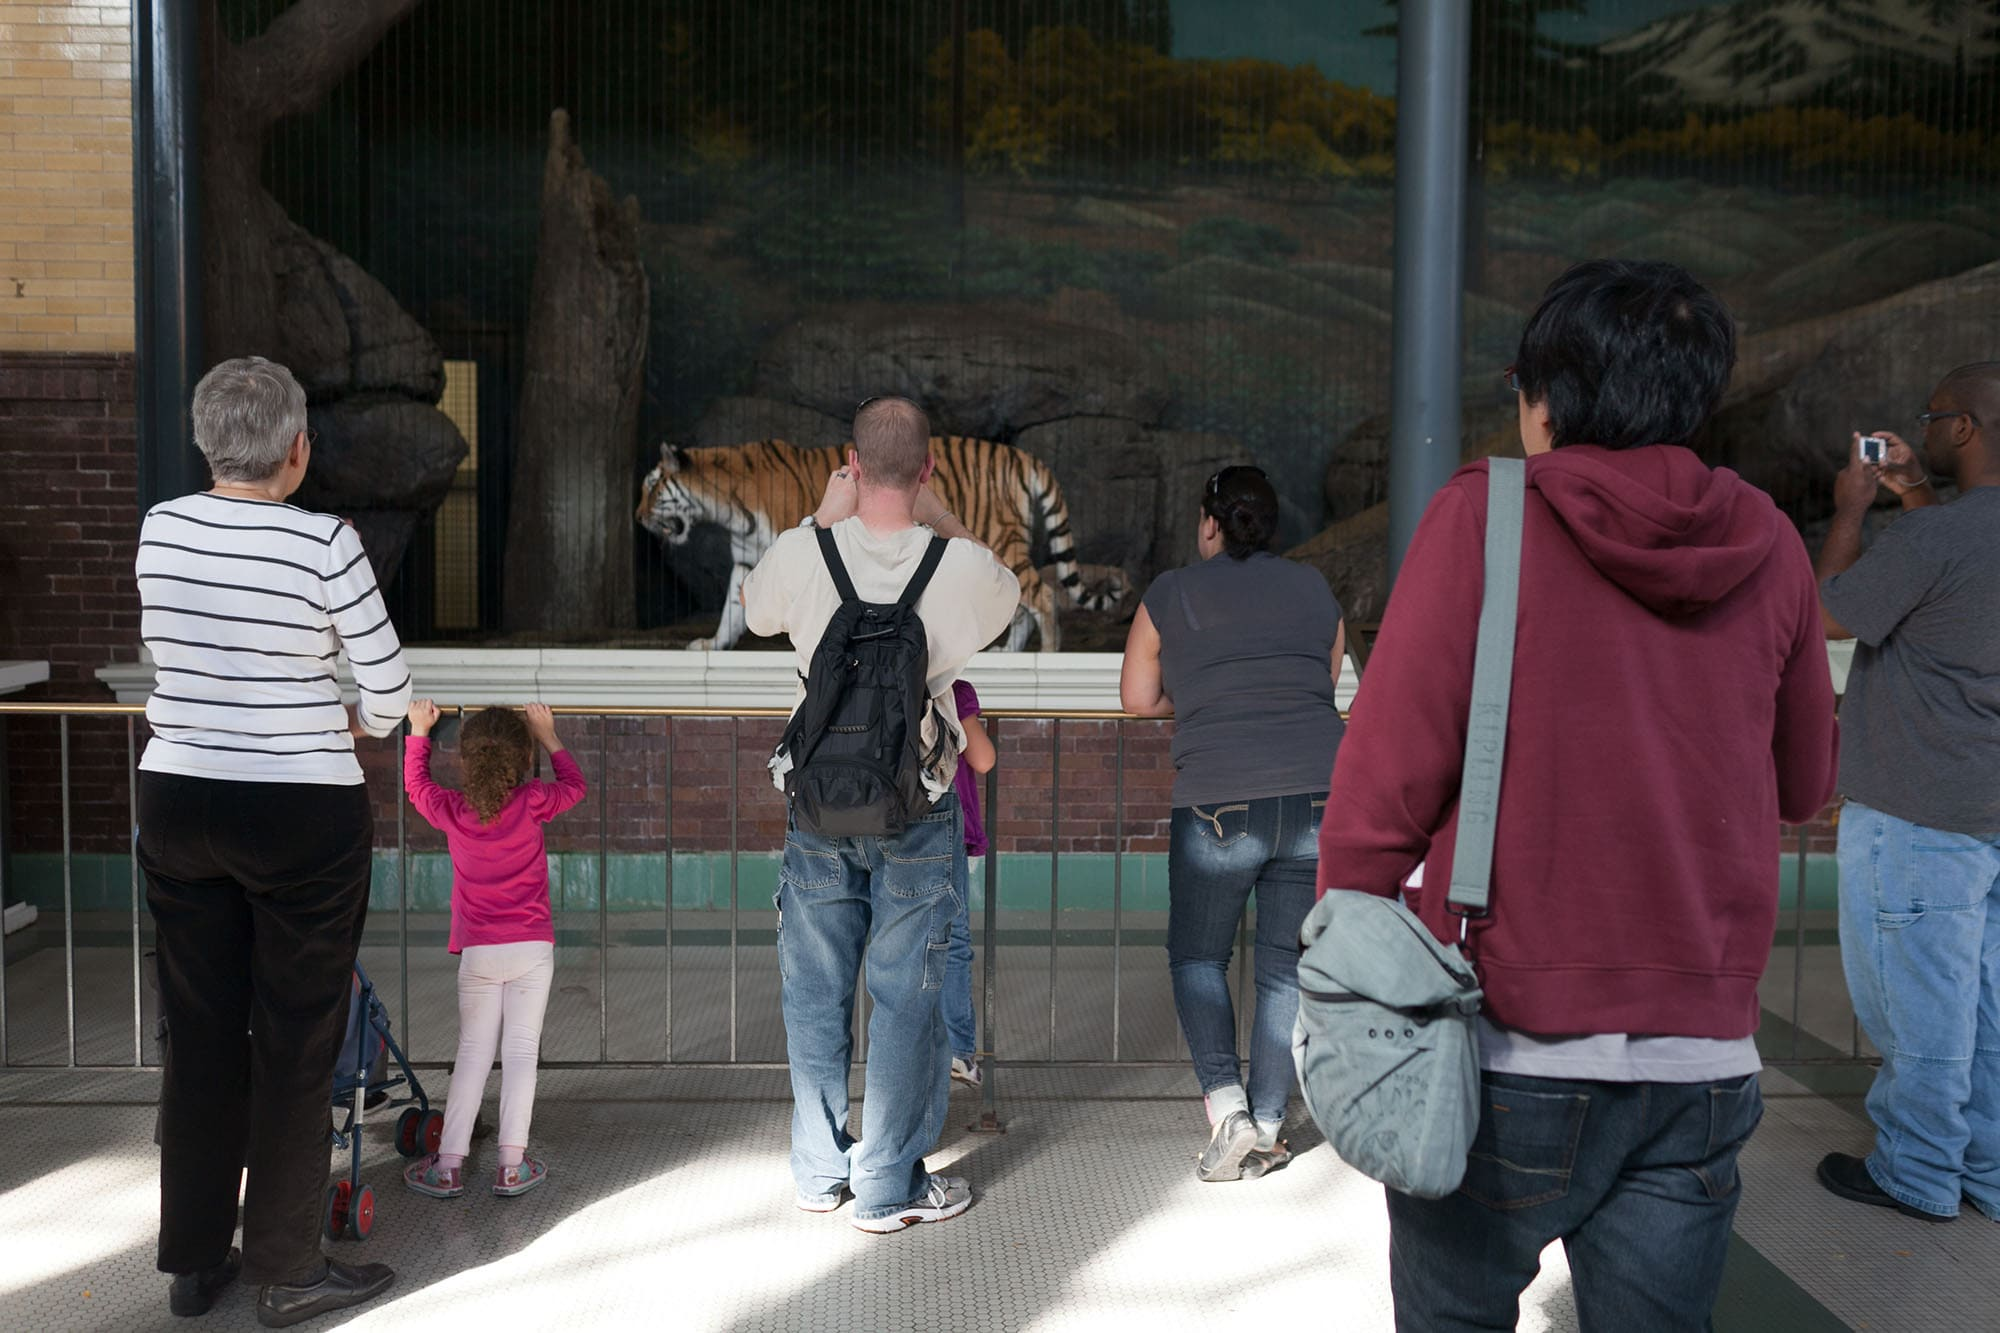 Lincoln Park Zoo in Chicago